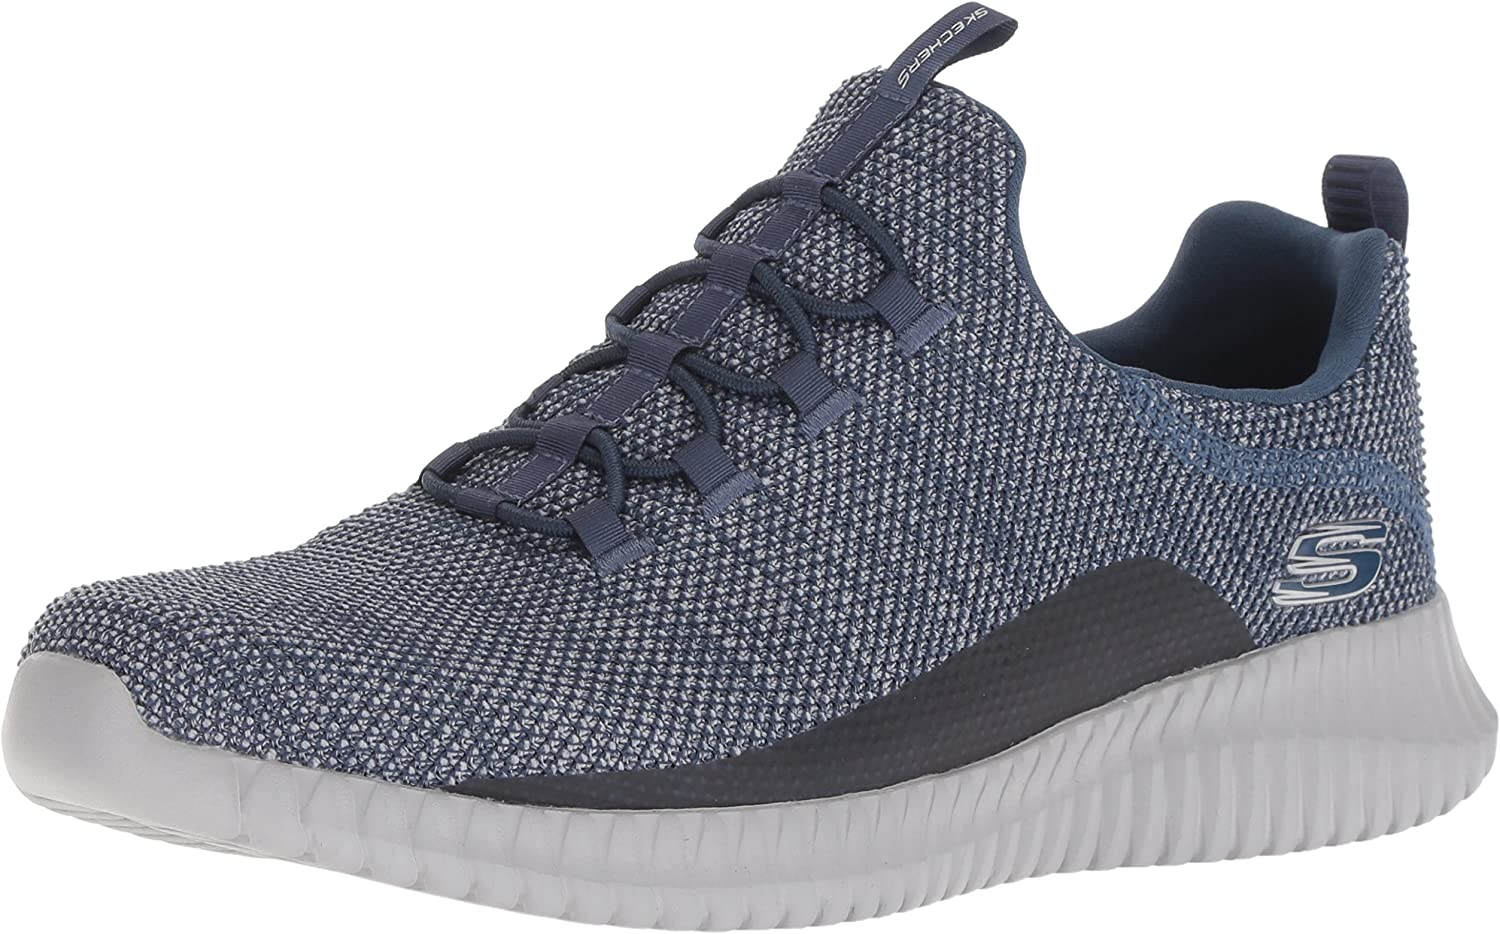 Skechers Mens Elite Flex- Westerfeld Sneakers